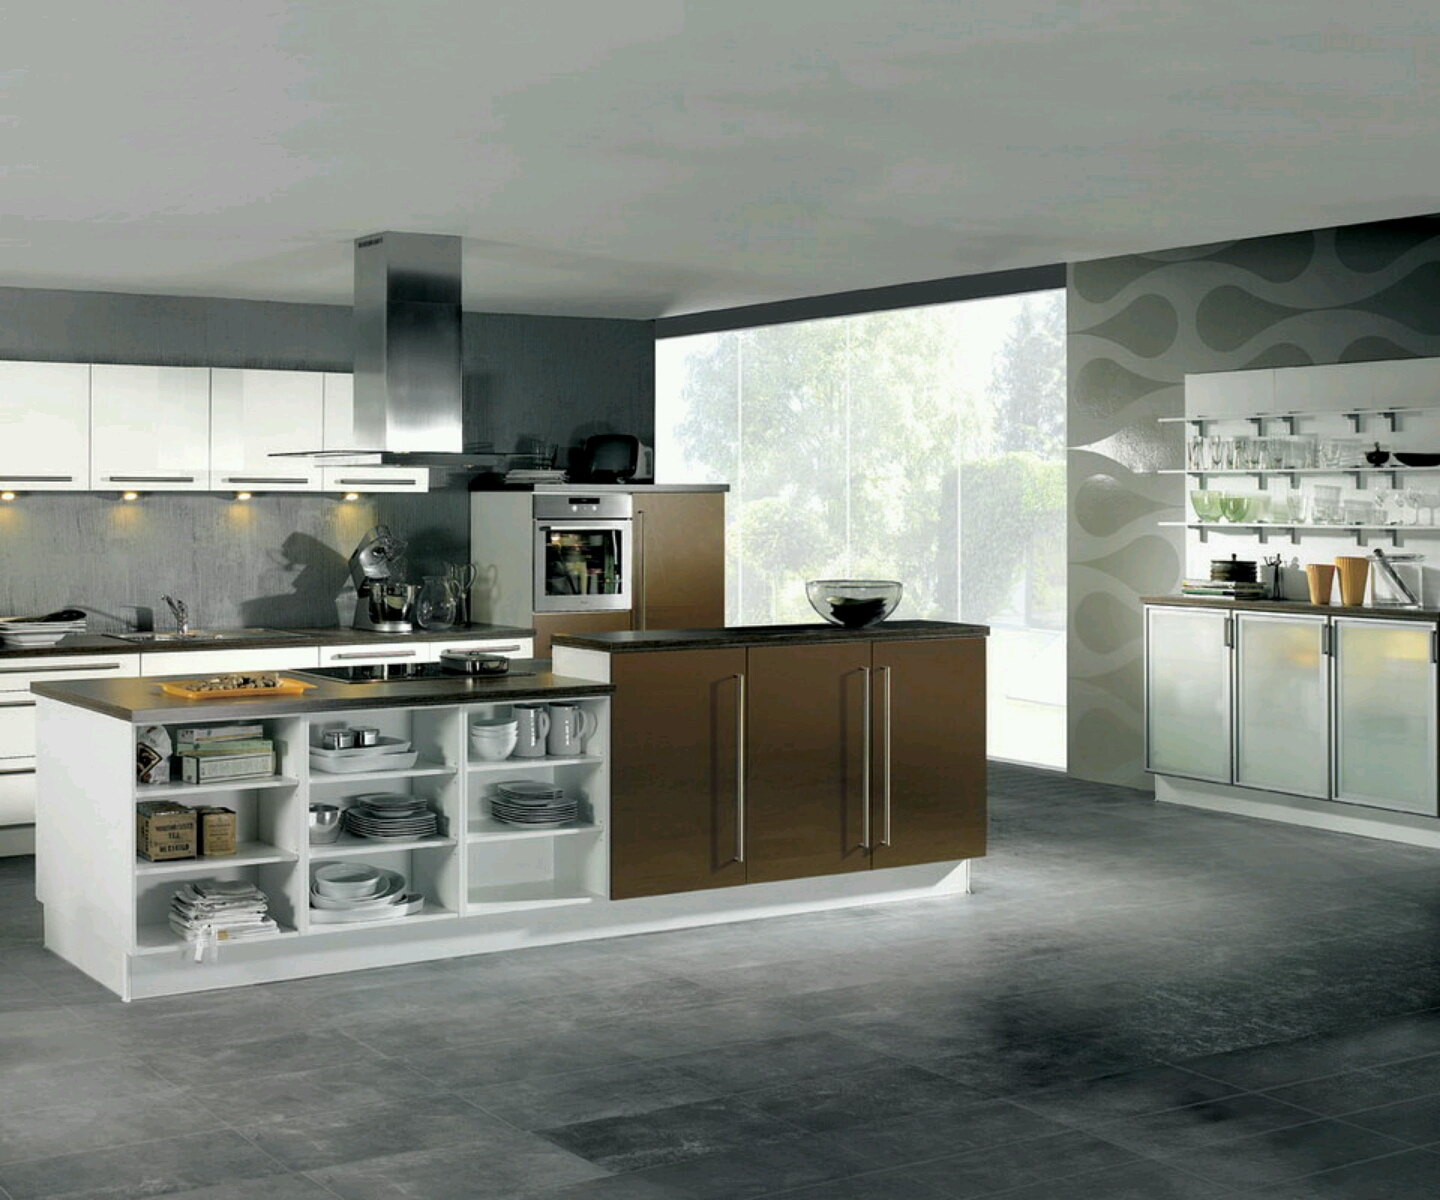 New home designs latest ultra modern kitchen designs ideas for Kitchen modern design ideas